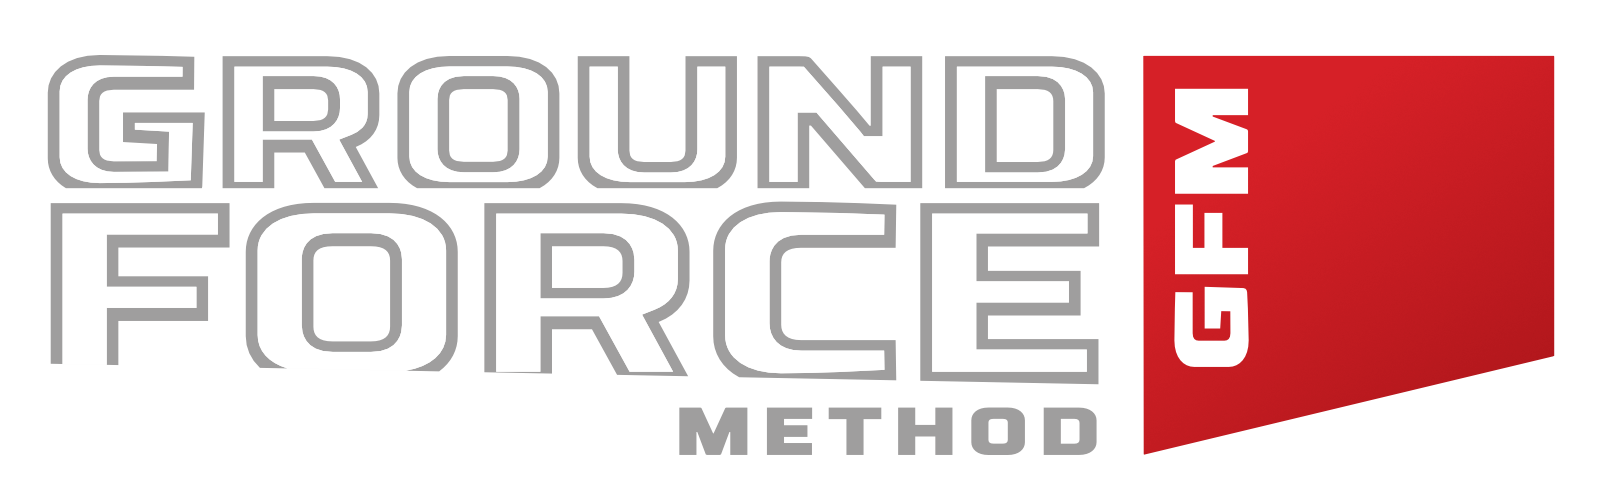 groundforcemethod.com